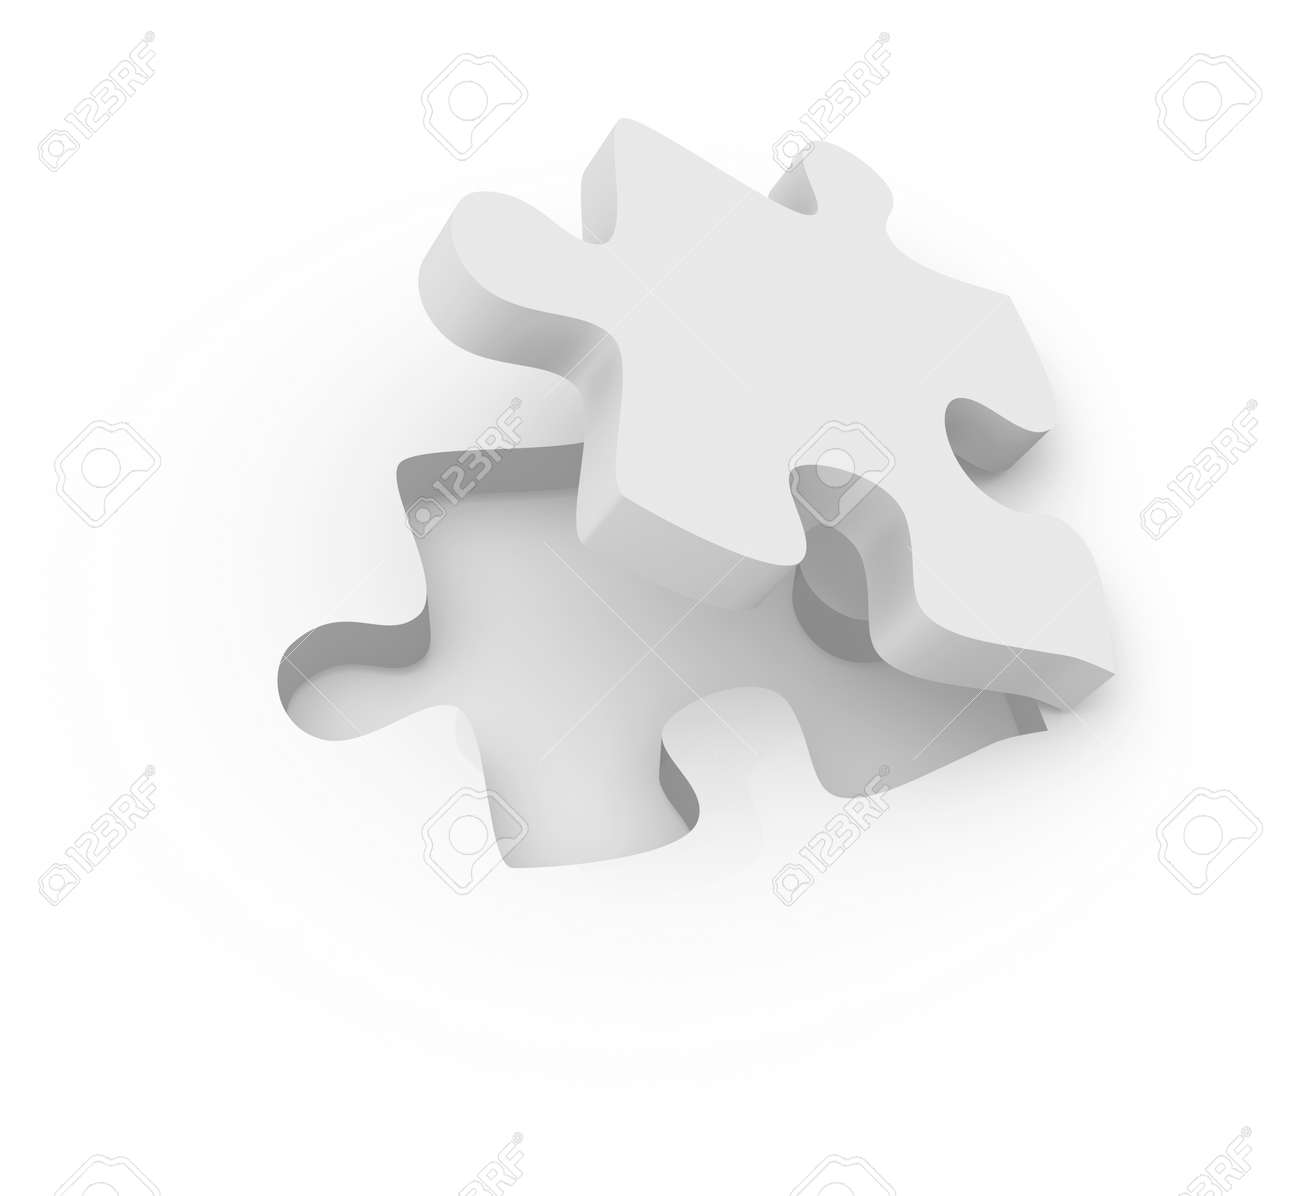 Puzzle Piece 3d Rendered Image Stock Photo